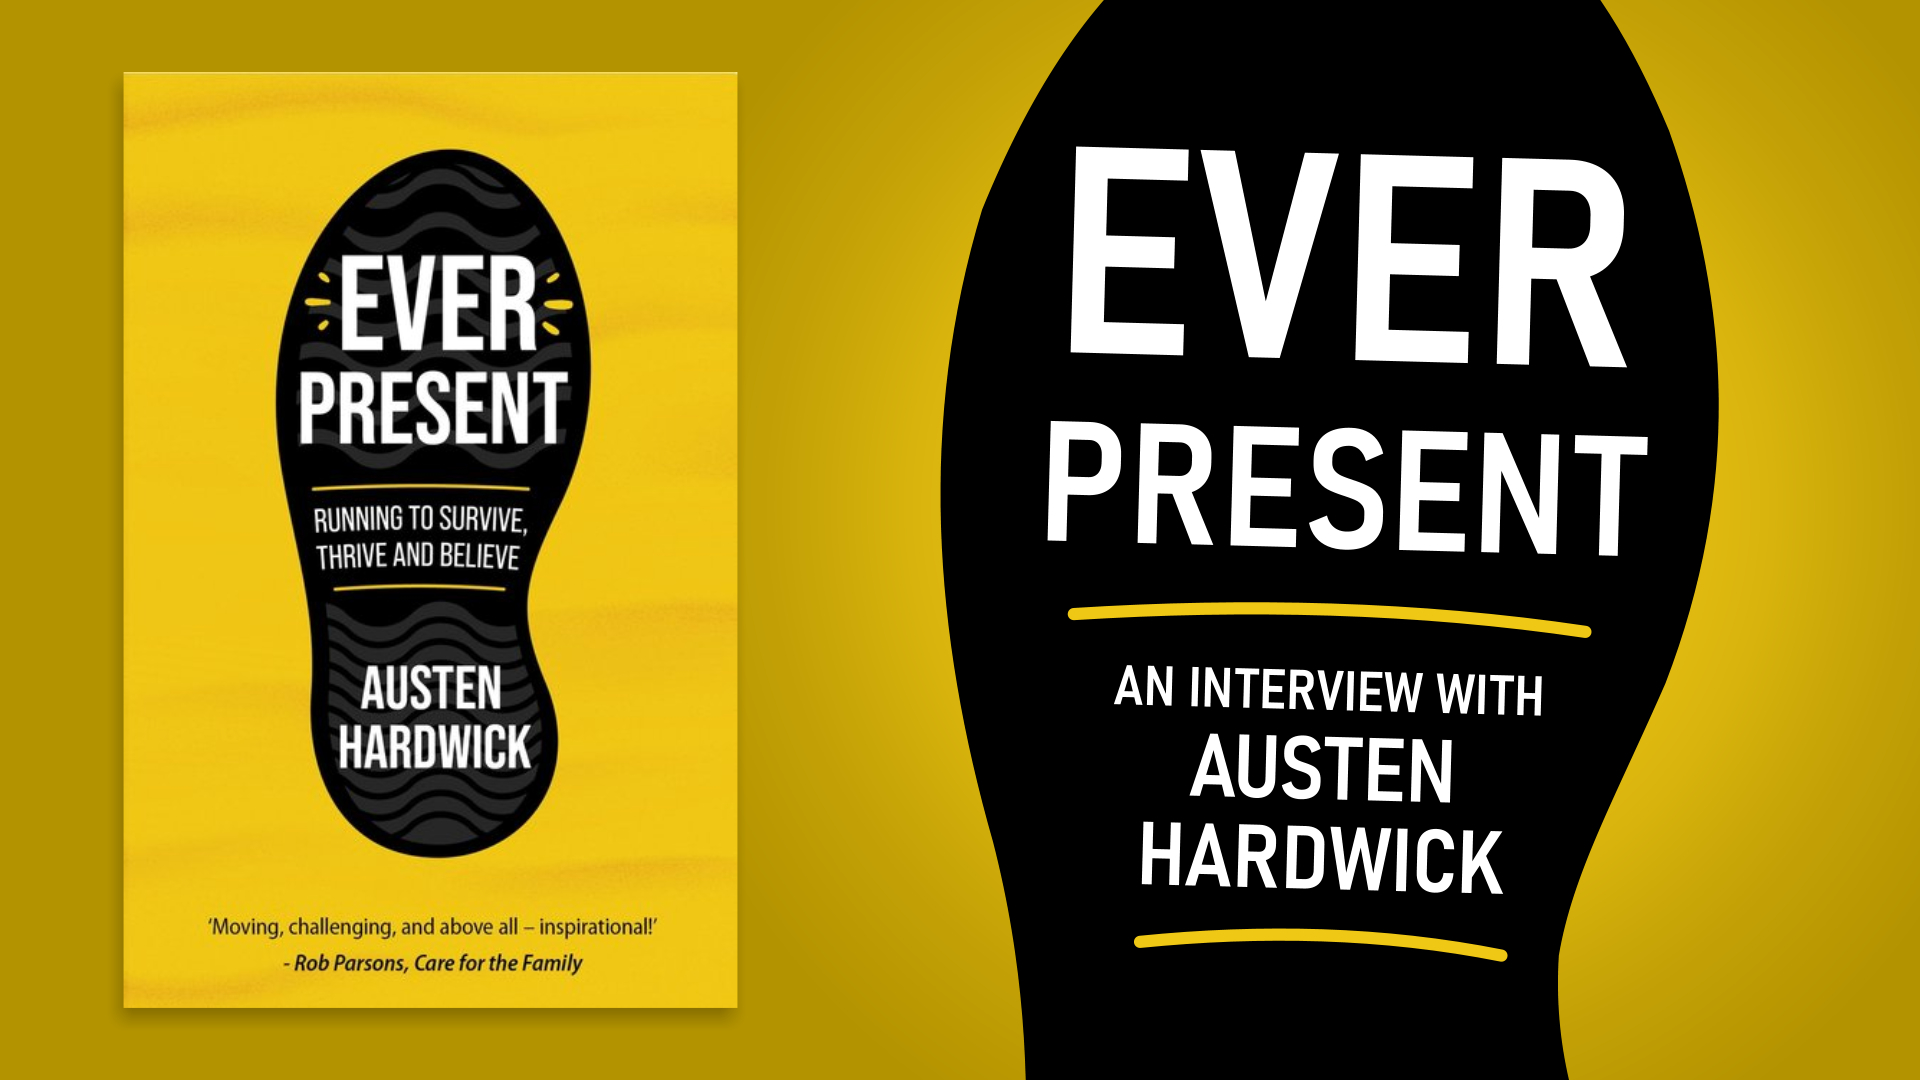 Interview with Austen Hardwick on the inspiration behind his book Ever Present